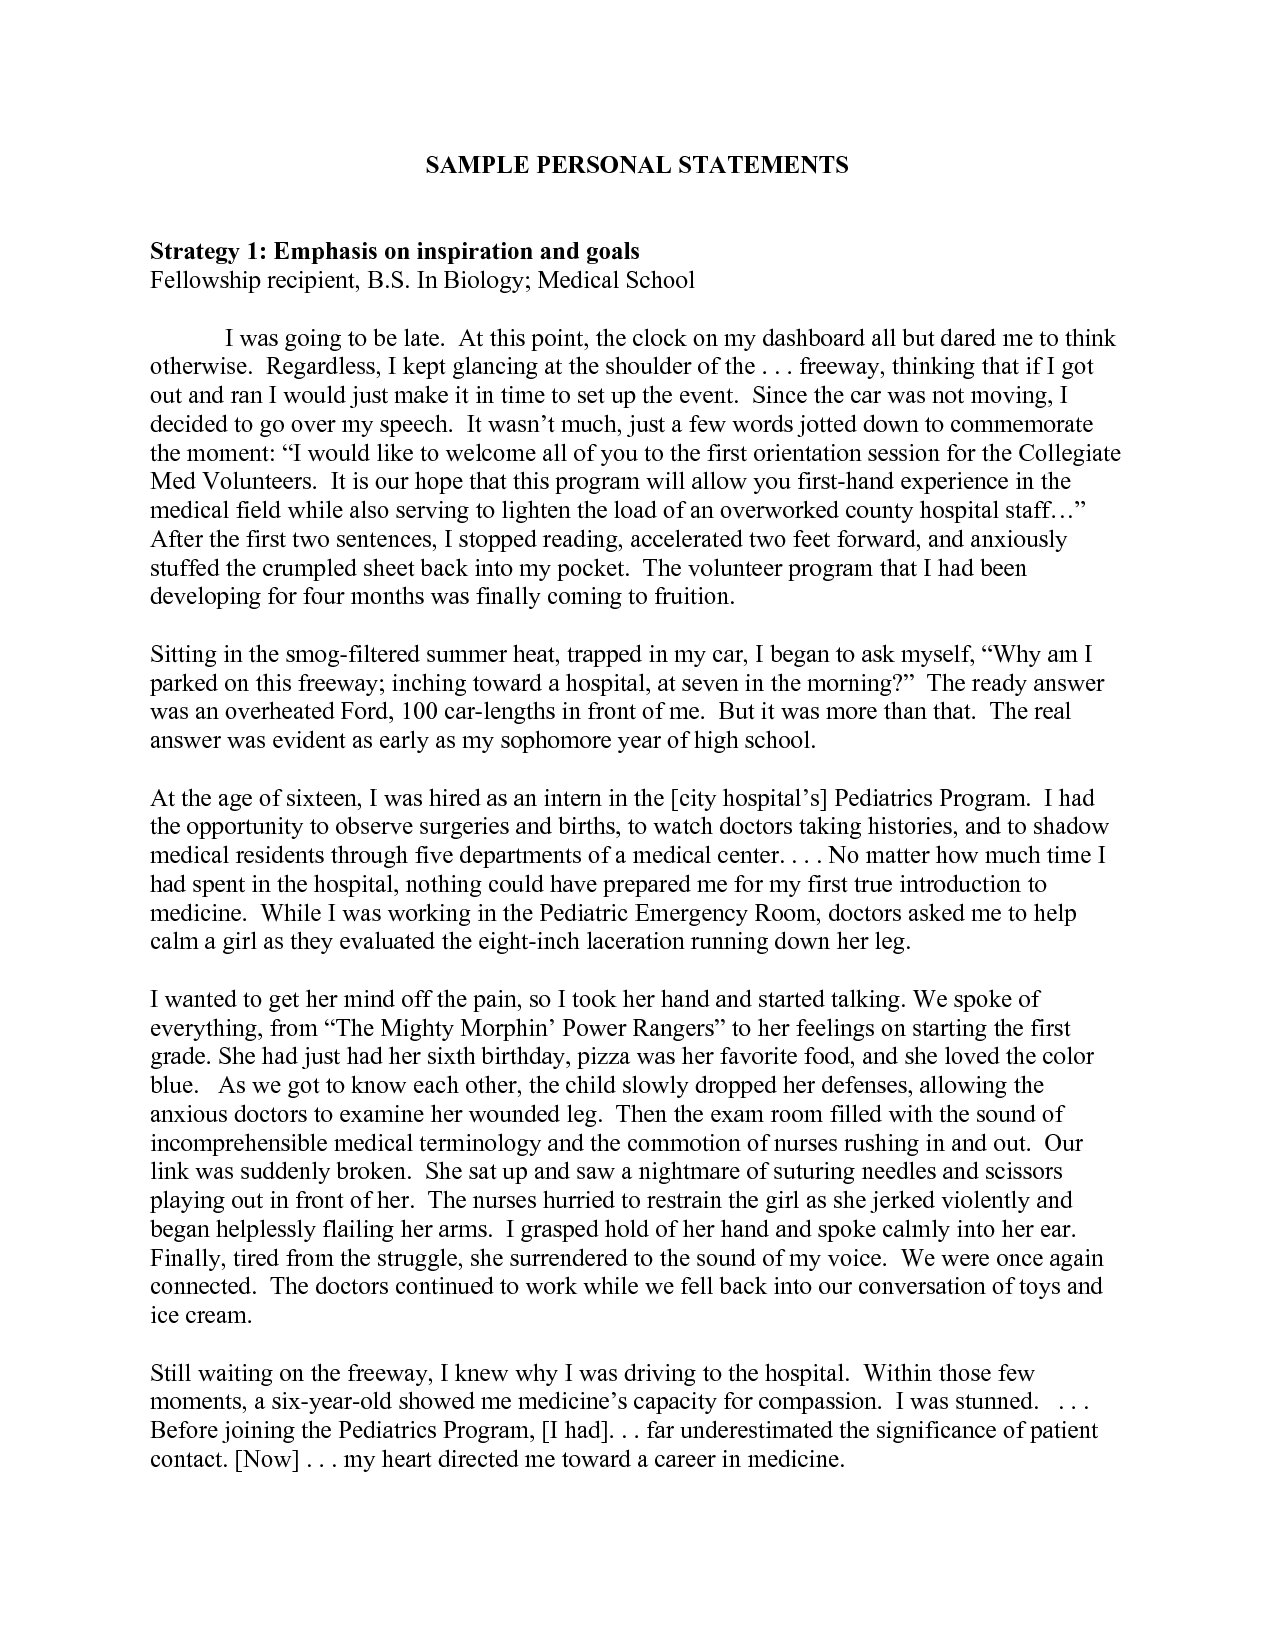 028 Personal Essay Definition Help Writing Professional On Shakespeare Archaicawful Experience Narrative Meaning Full